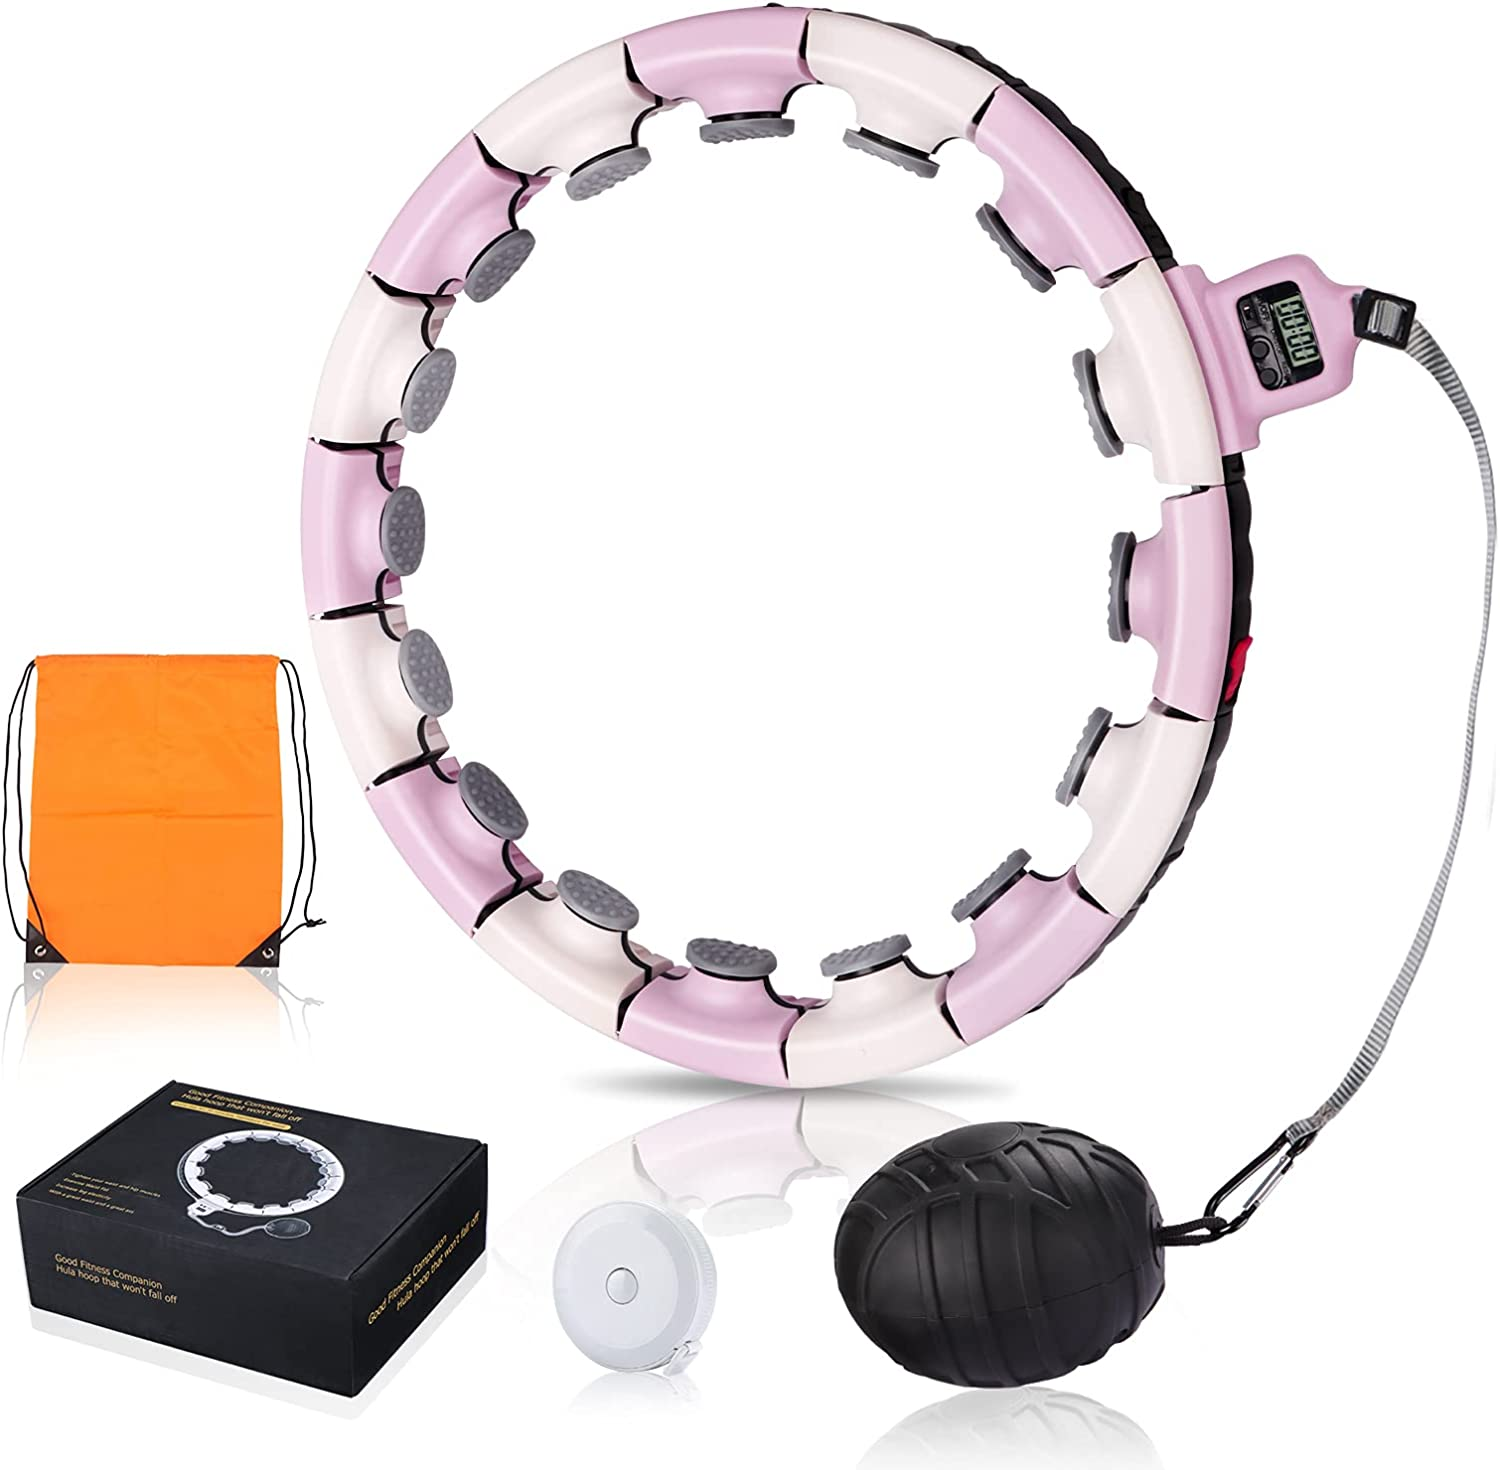 Smart Weighted Hoola Fitness Hoop Super special price for Weight Loss Adults Upg Easy-to-use New